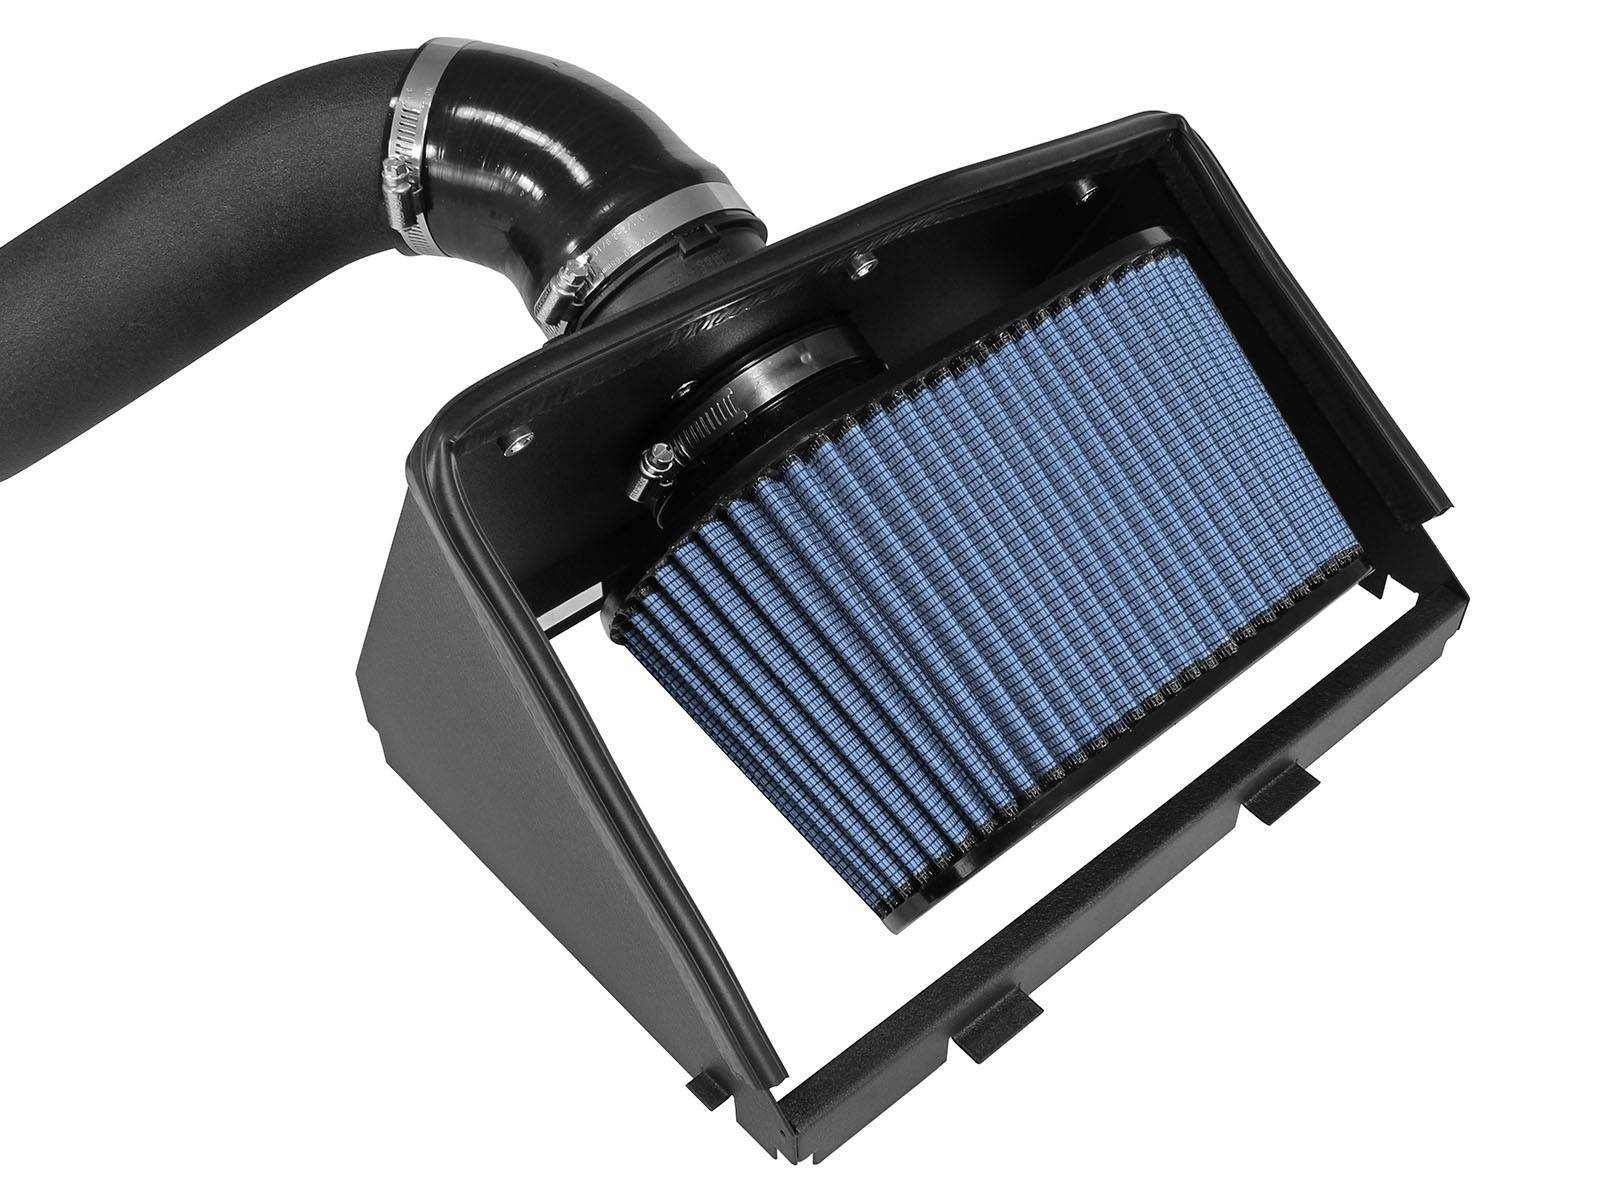 54-32572 - aFE Pro 5R Performance Cold Air Intake System for 2014-2018 Dodge Ram 1500 3.0L EcoDiesel trucks